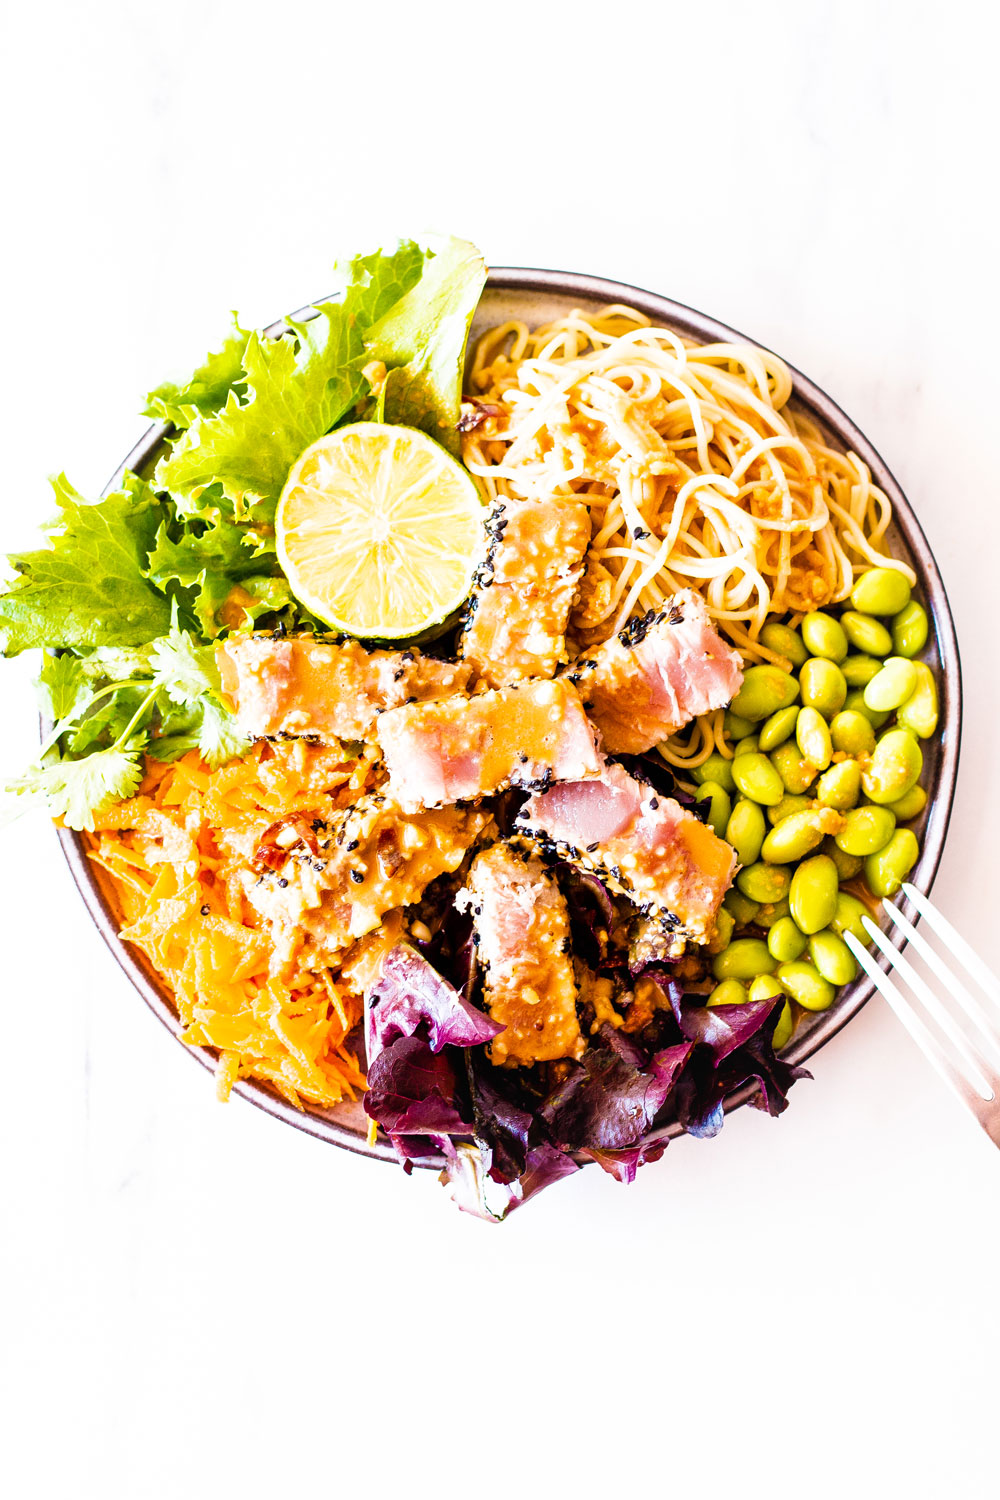 Whether you're searching for a weeknight dinner or if you're tired of the same old canned tuna recipes, this Fresh Tuna Salad With Homemade Peanut Dressing has you covered! https://www.spotebi.com/recipes/fresh-tuna-salad-homemade-peanut-dressing/